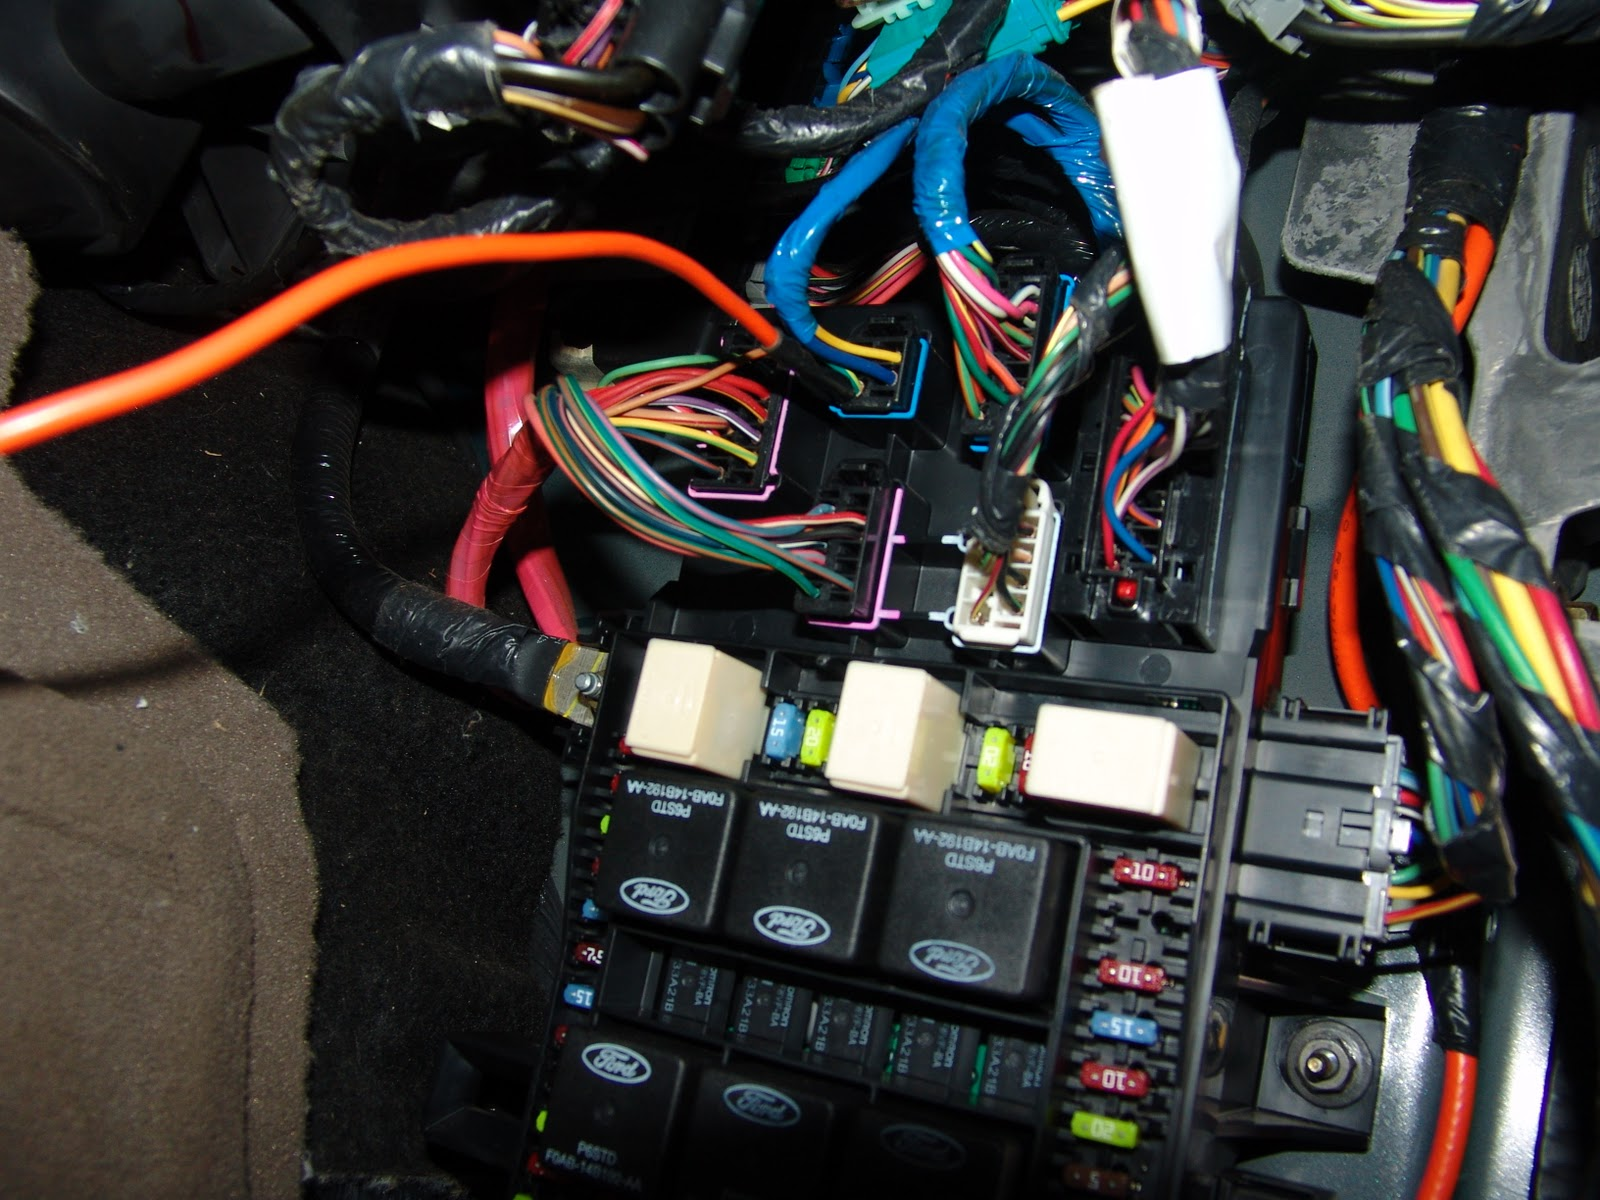 Mitsubishi Galant Radio Wiring Diagram On 89 Ford F 150 Radio Wiring